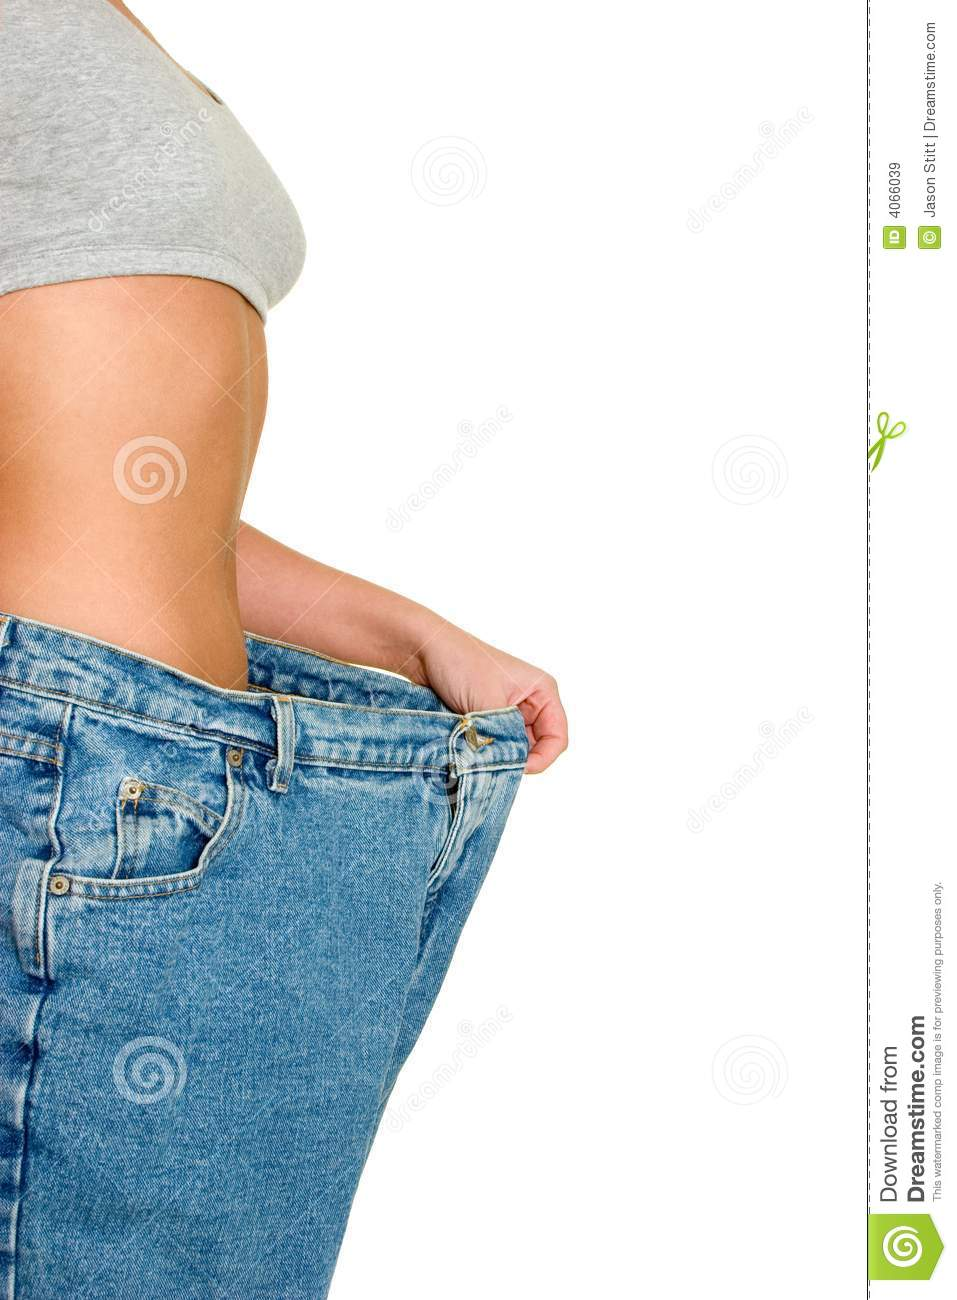 Weight Loss Pants Royalty Free Stock Images - Image: 4066039